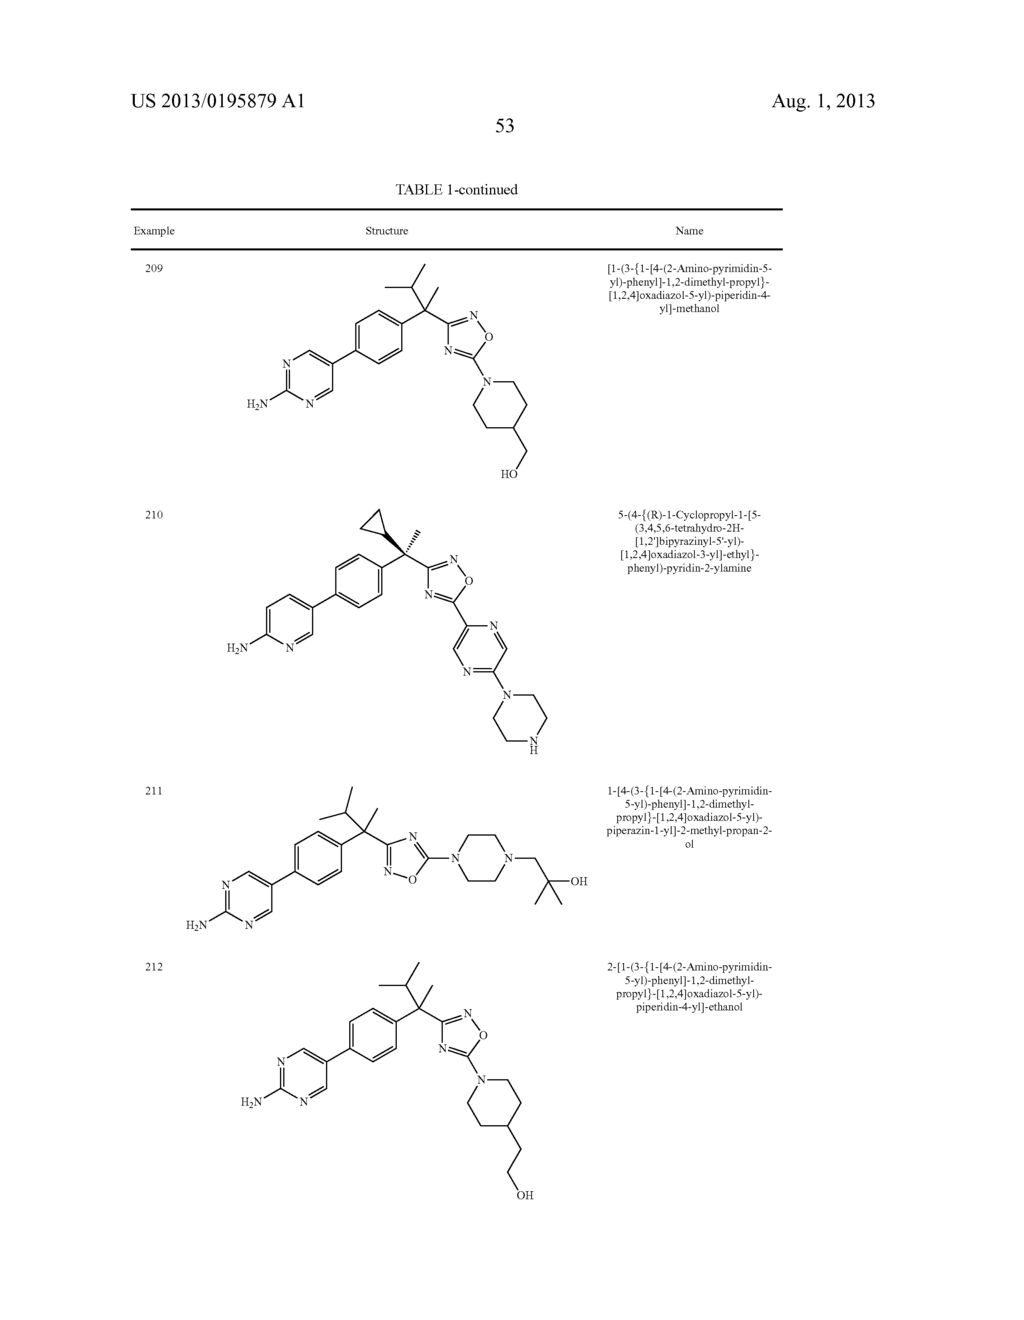 OXADIAZOLE INHIBITORS OF LEUKOTRIENE PRODUCTION FOR COMBINATION THERAPY - diagram, schematic, and image 55